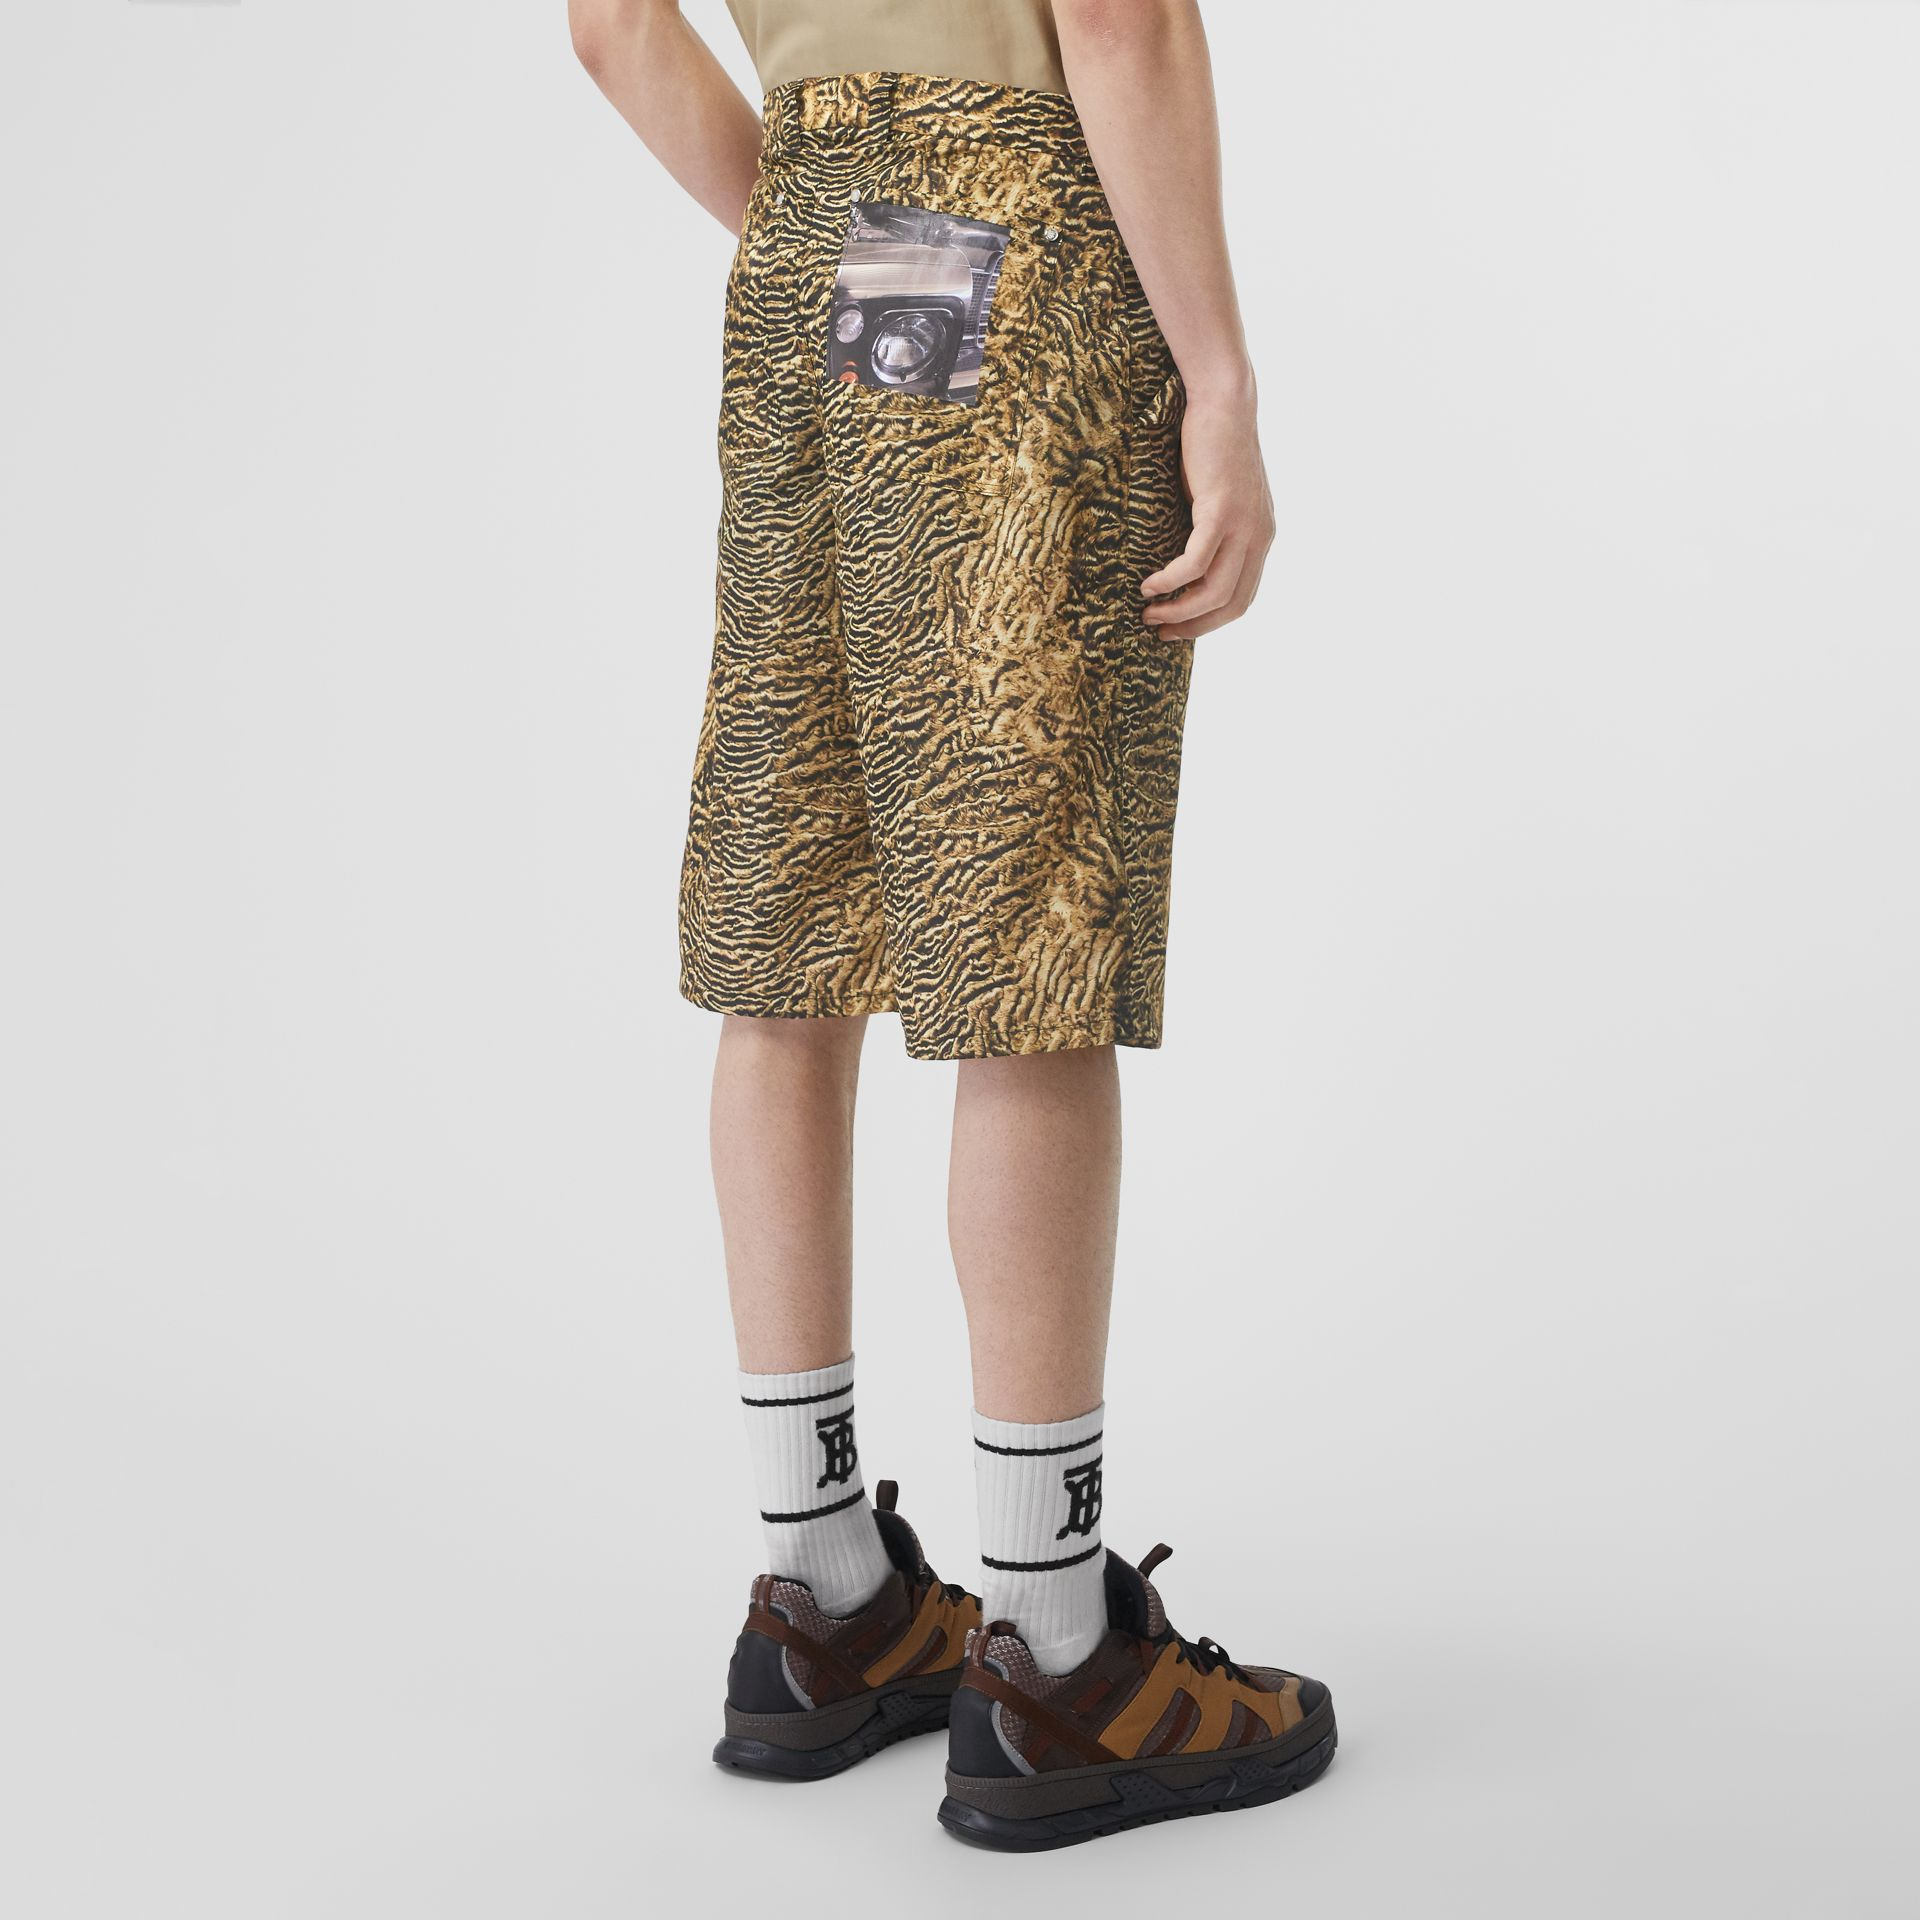 Tiger Print Nylon Shorts in Beige | Burberry United States - gallery image 2